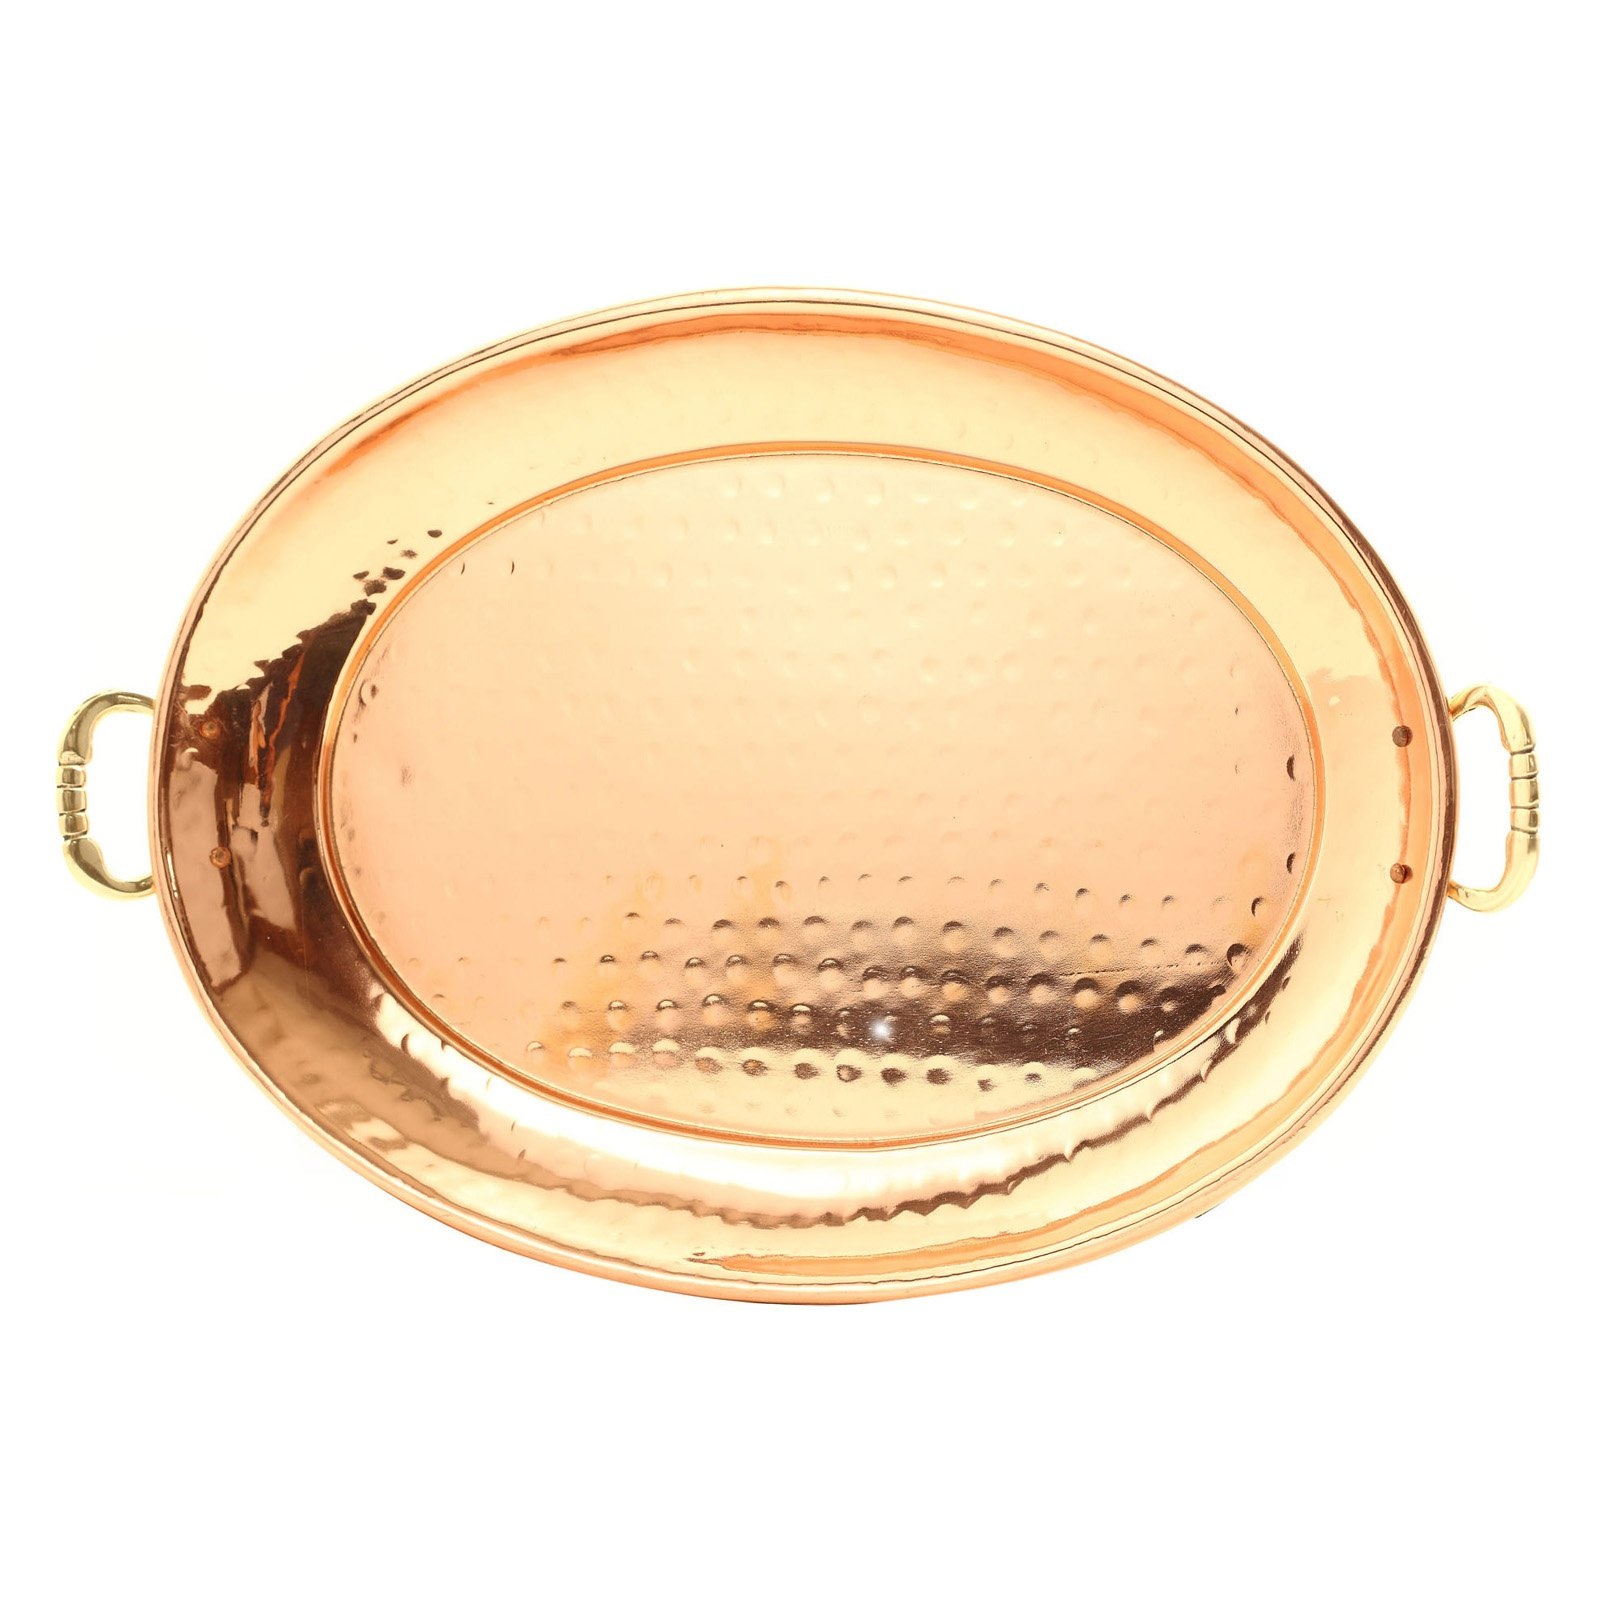 Old Dutch Oval Decor Copper Tray With Cast Brass Handles